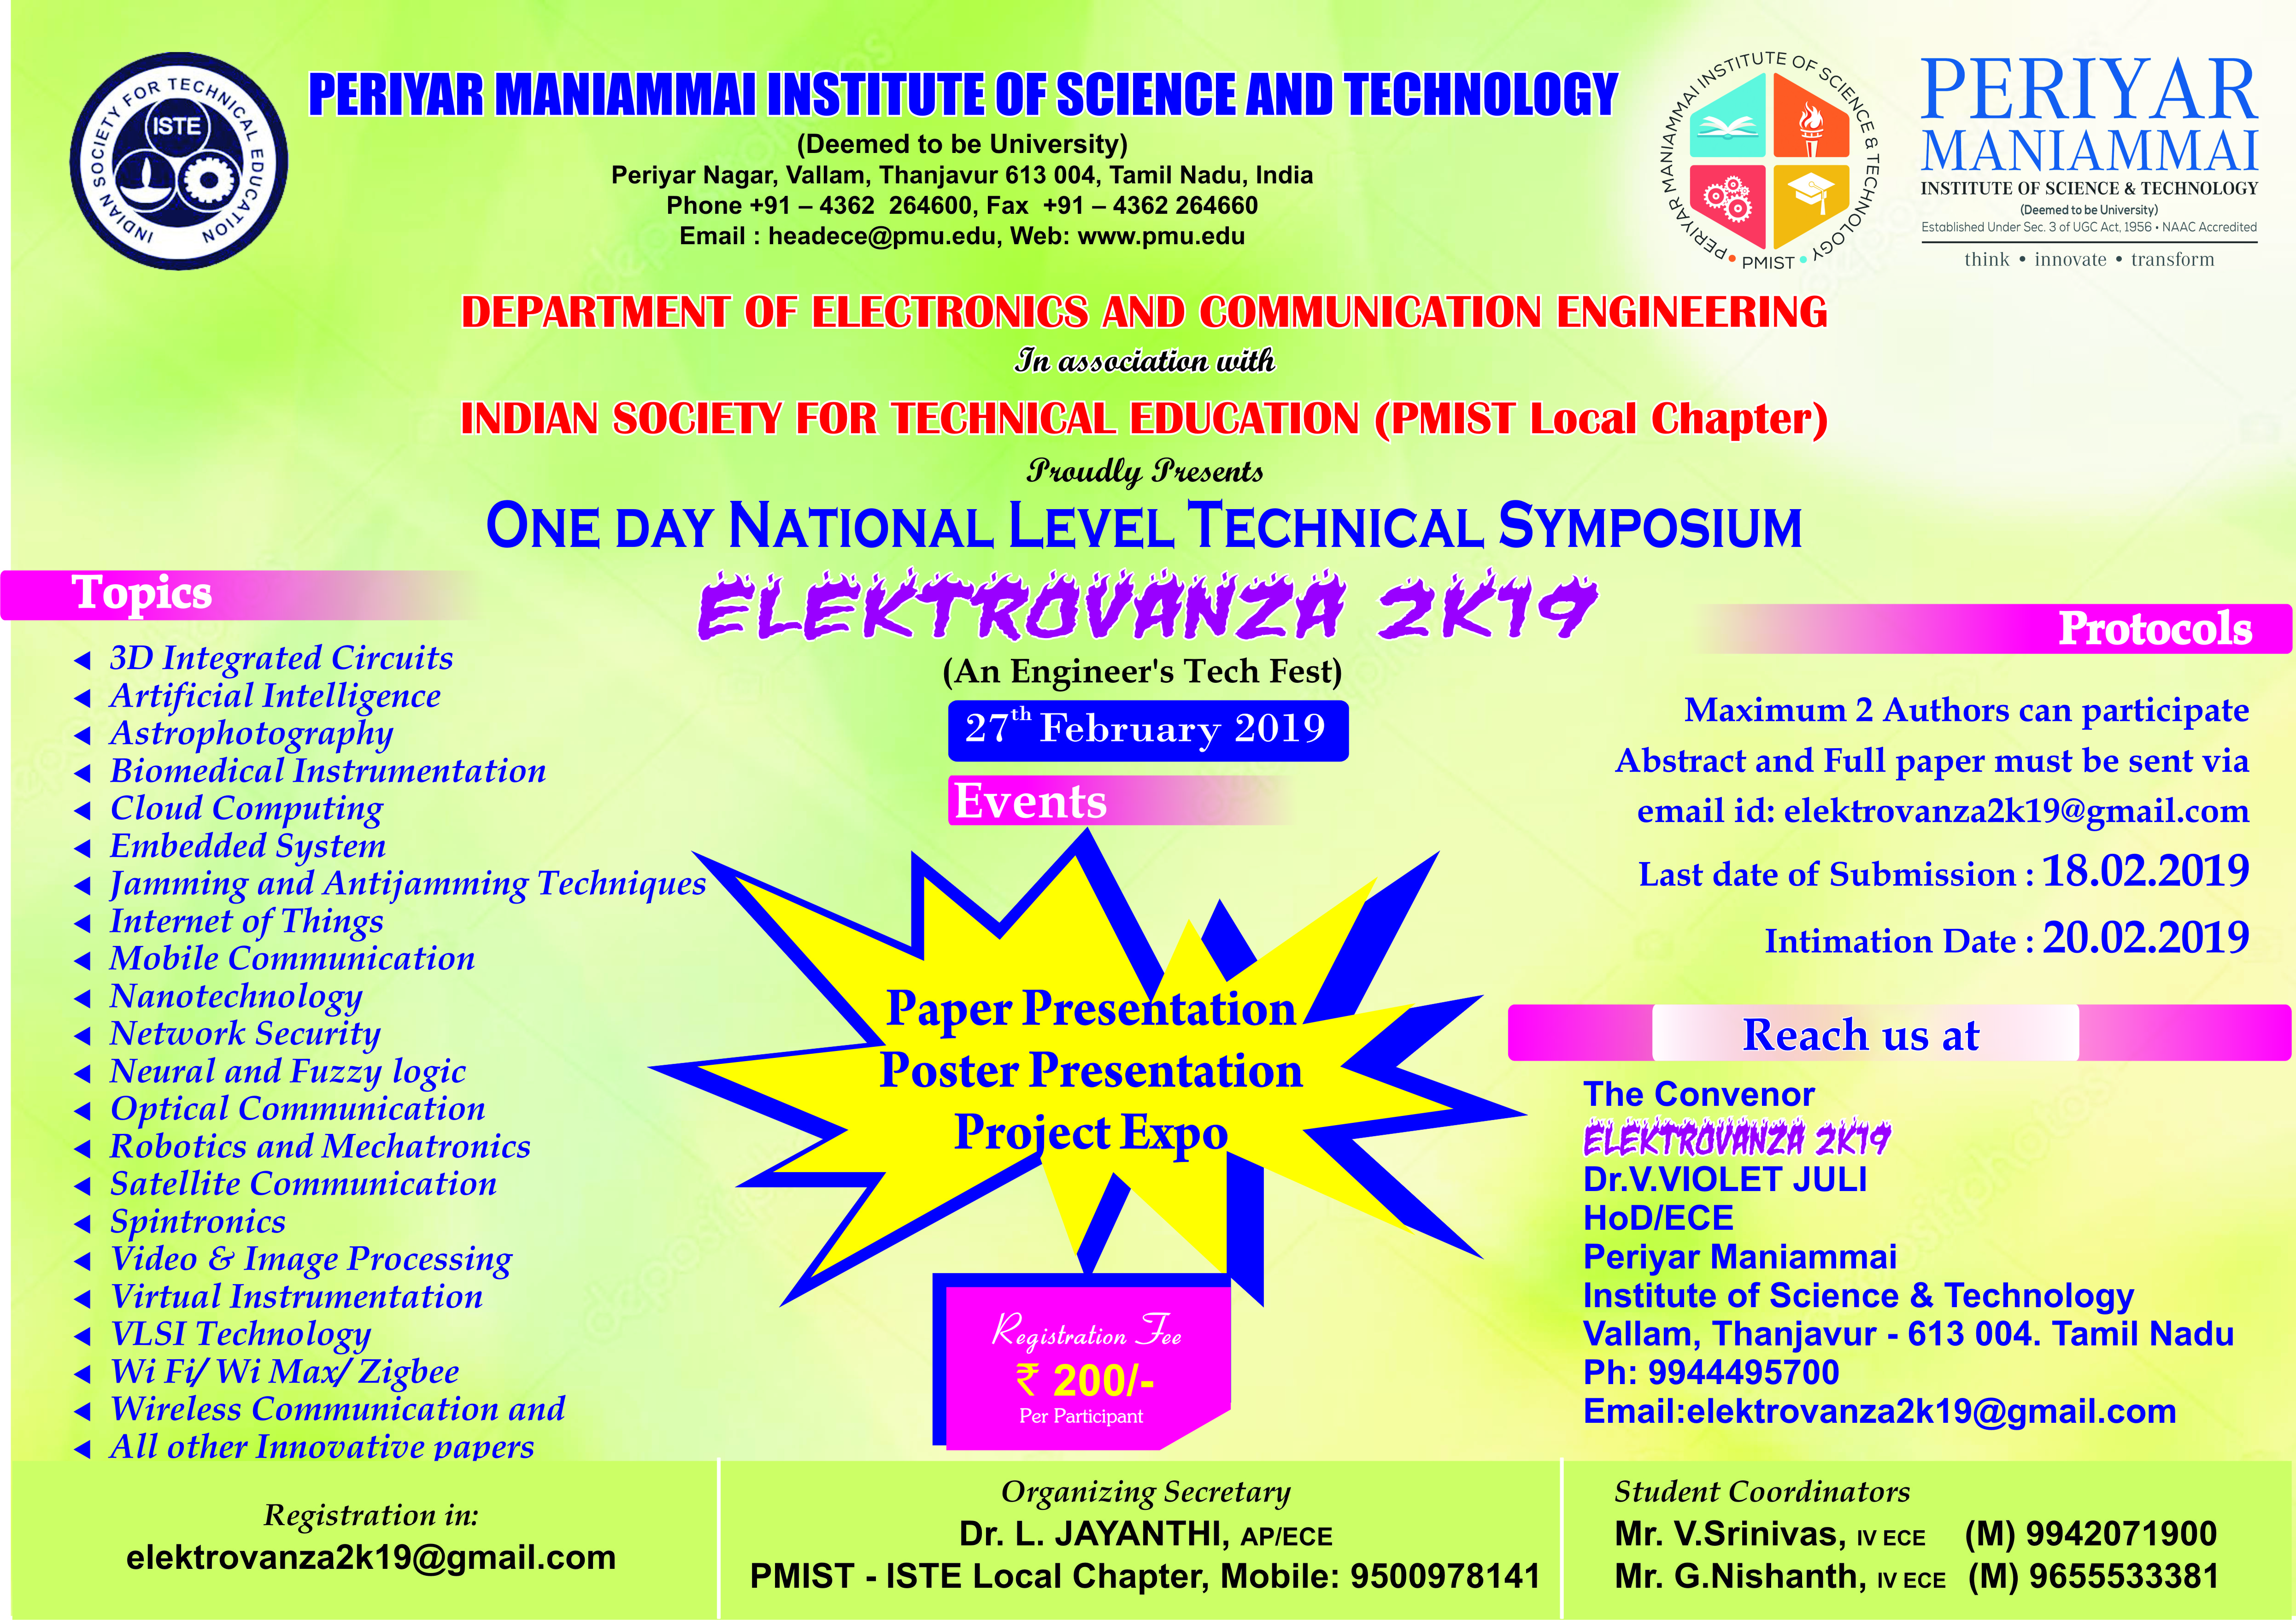 Periyar Maniammai Institute of Science & Technology | Think